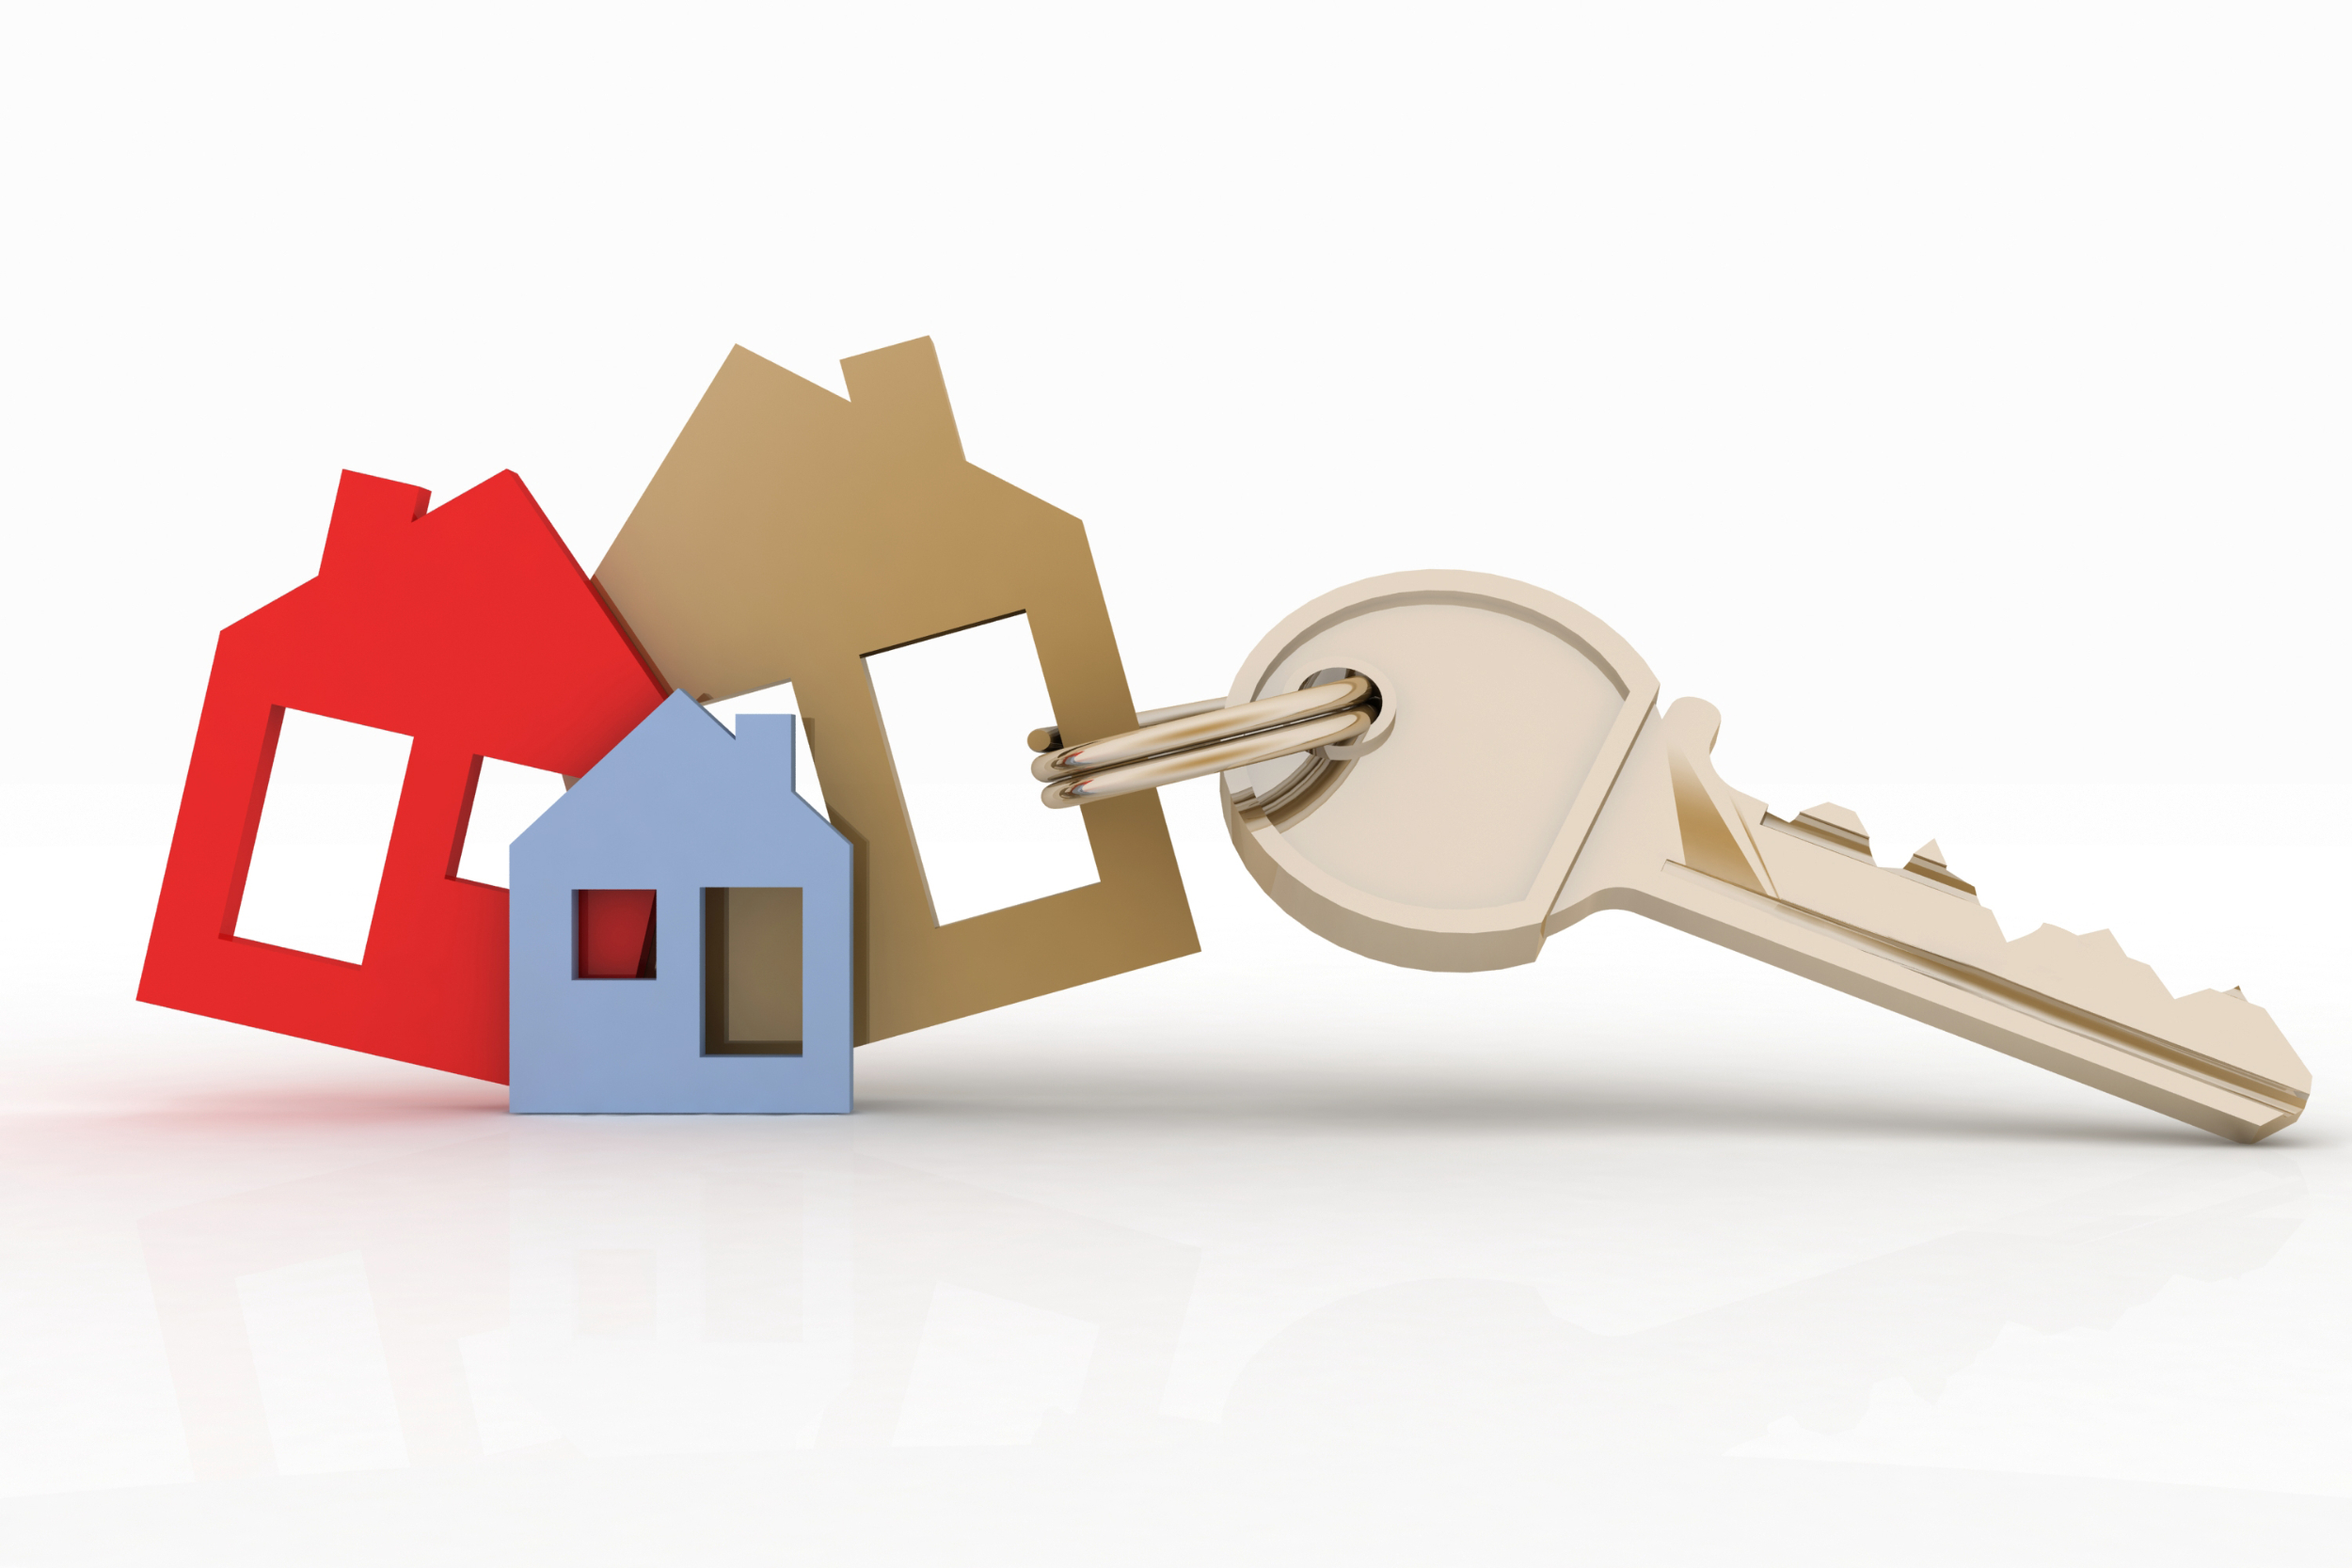 House keys with a colorful keychain on a white background